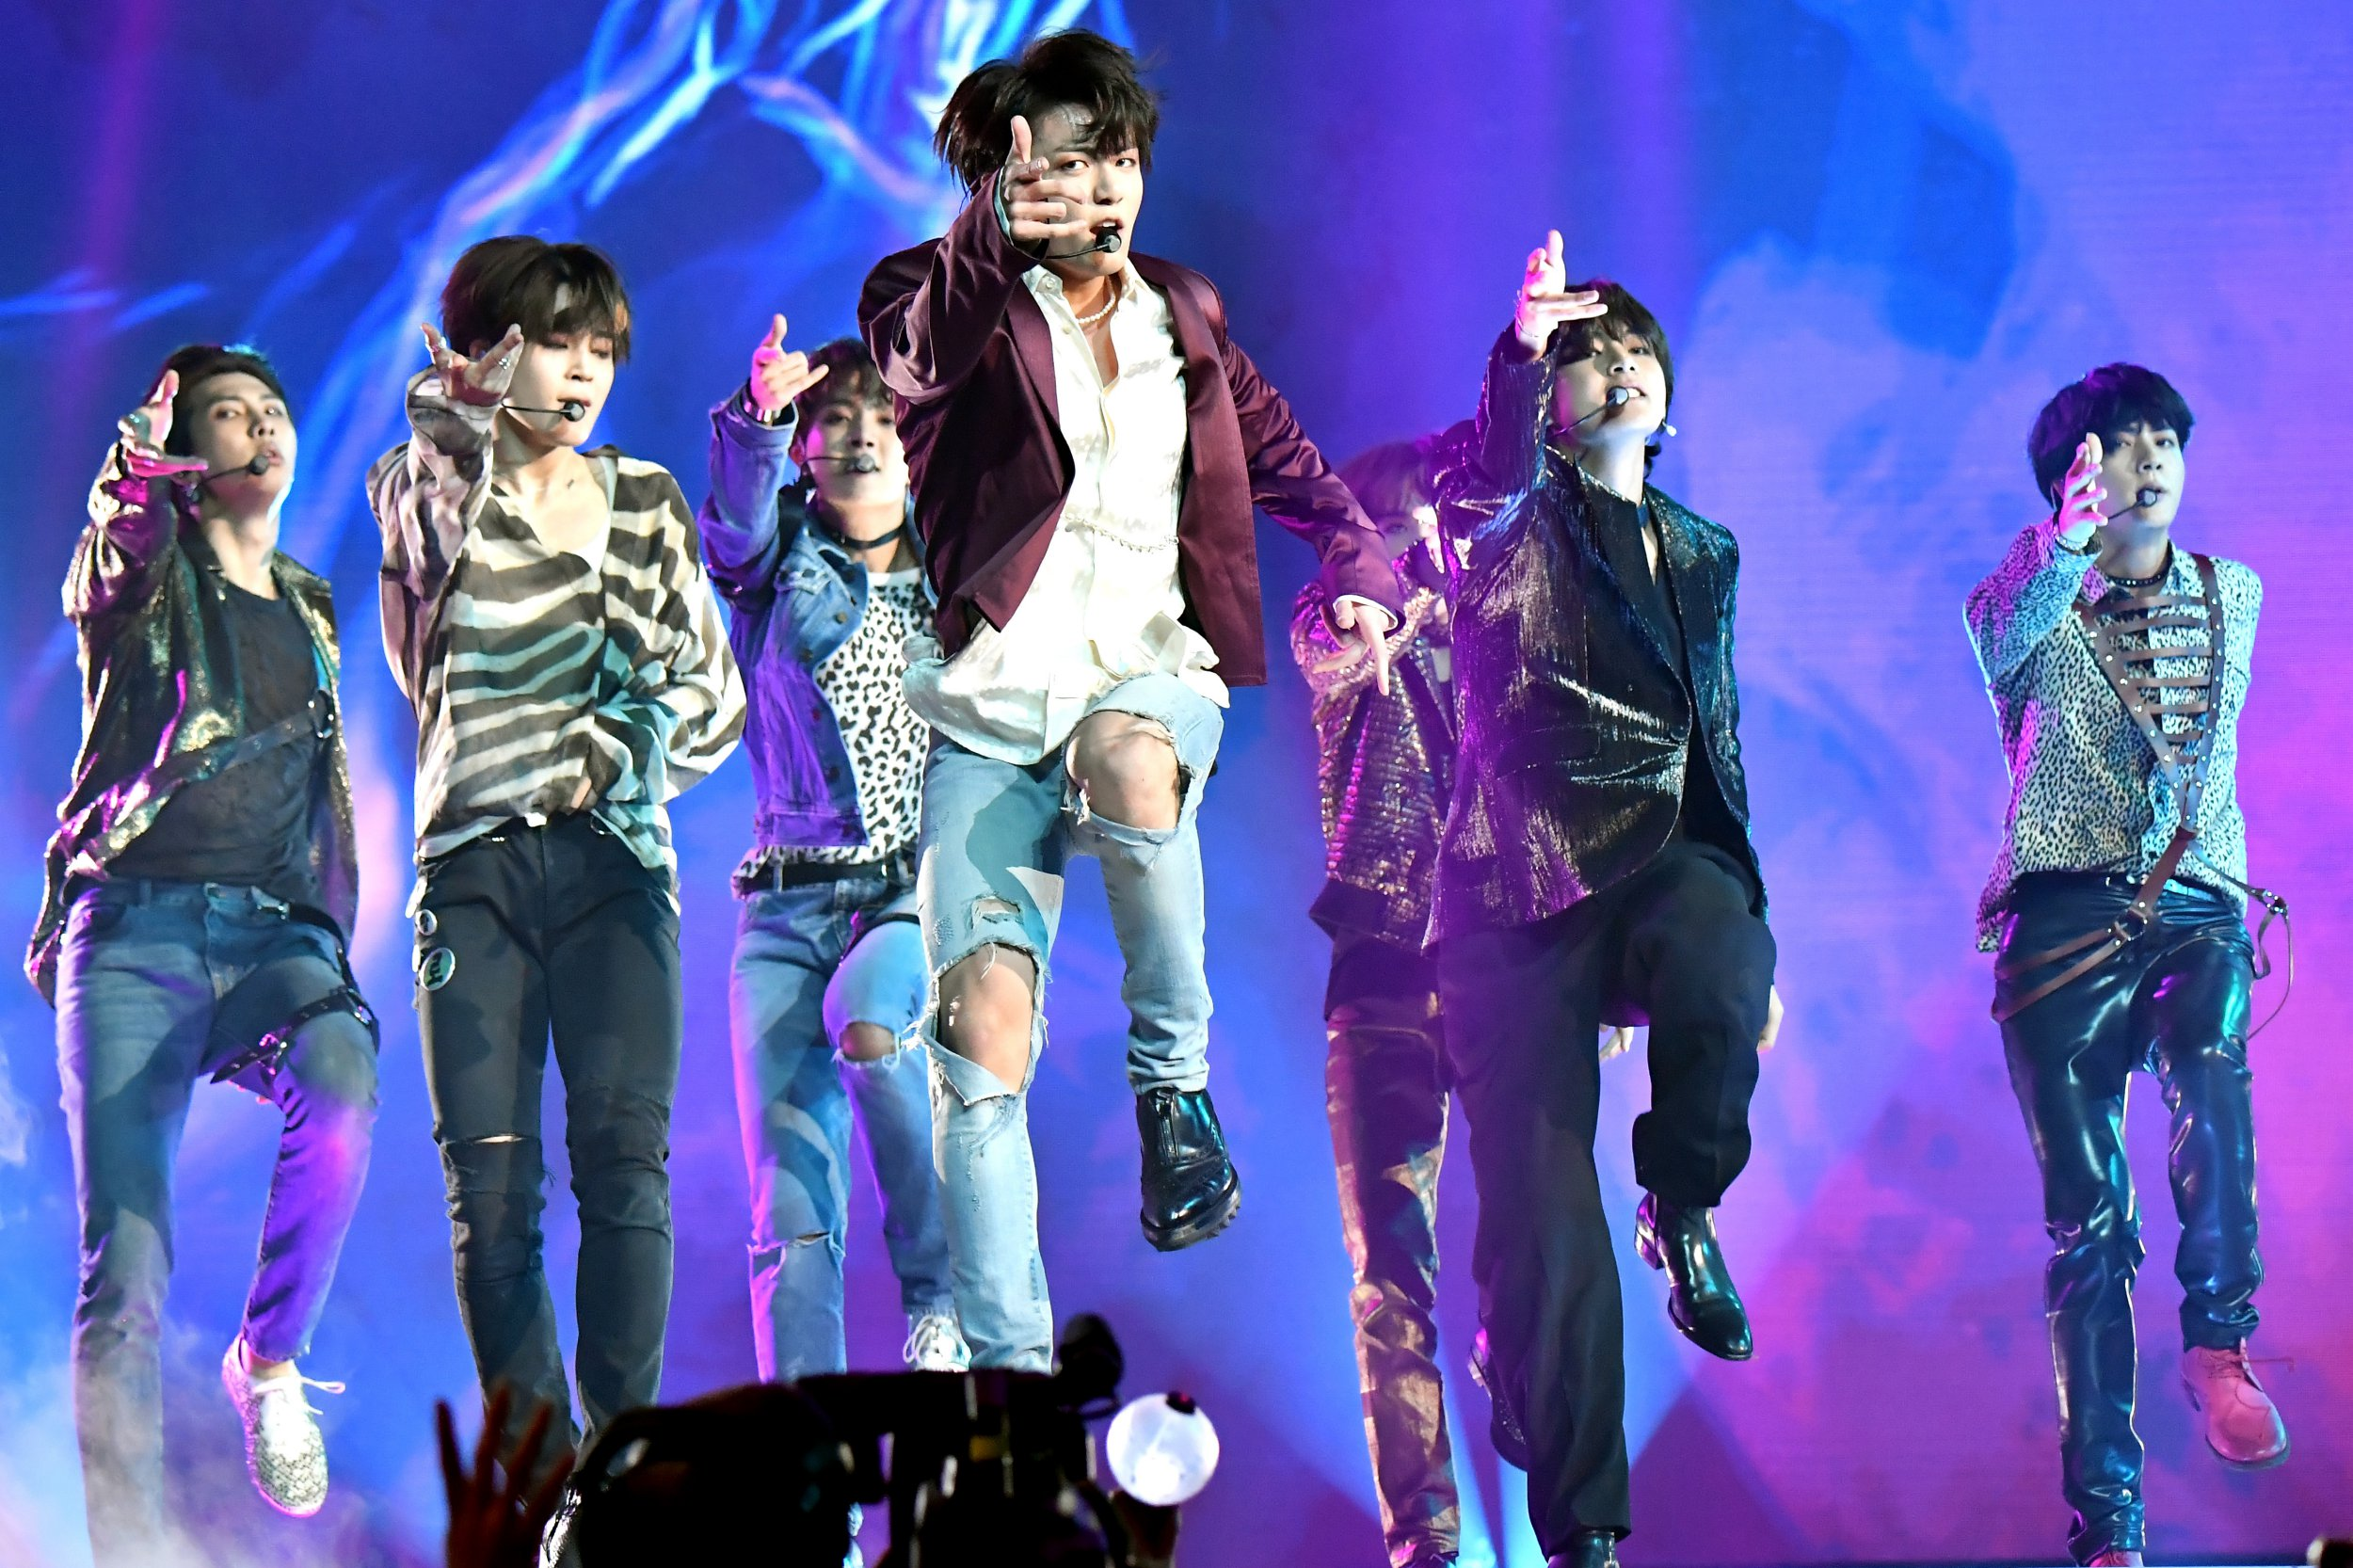 LAS VEGAS, NV - MAY 20: Musical group BTS perform onstage during the 2018 Billboard Music Awards at MGM Grand Garden Arena on May 20, 2018 in Las Vegas, Nevada. (Photo by Jeff Kravitz/FilmMagic)